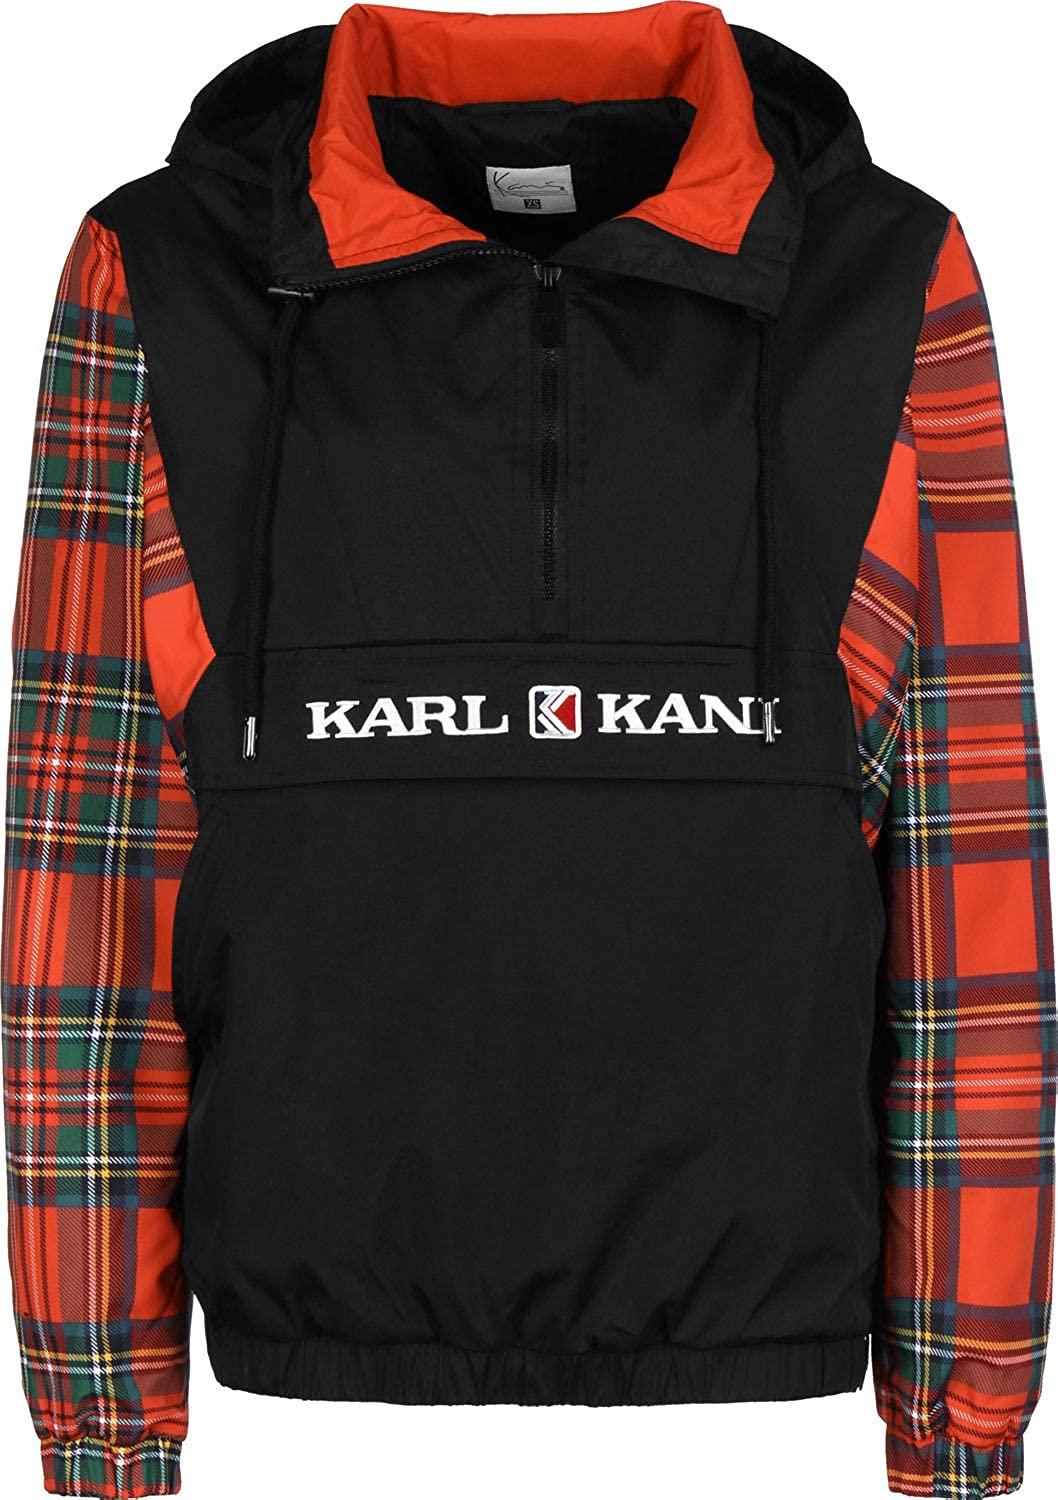 Karl Kani Check Windbreaker Ladies Jacket